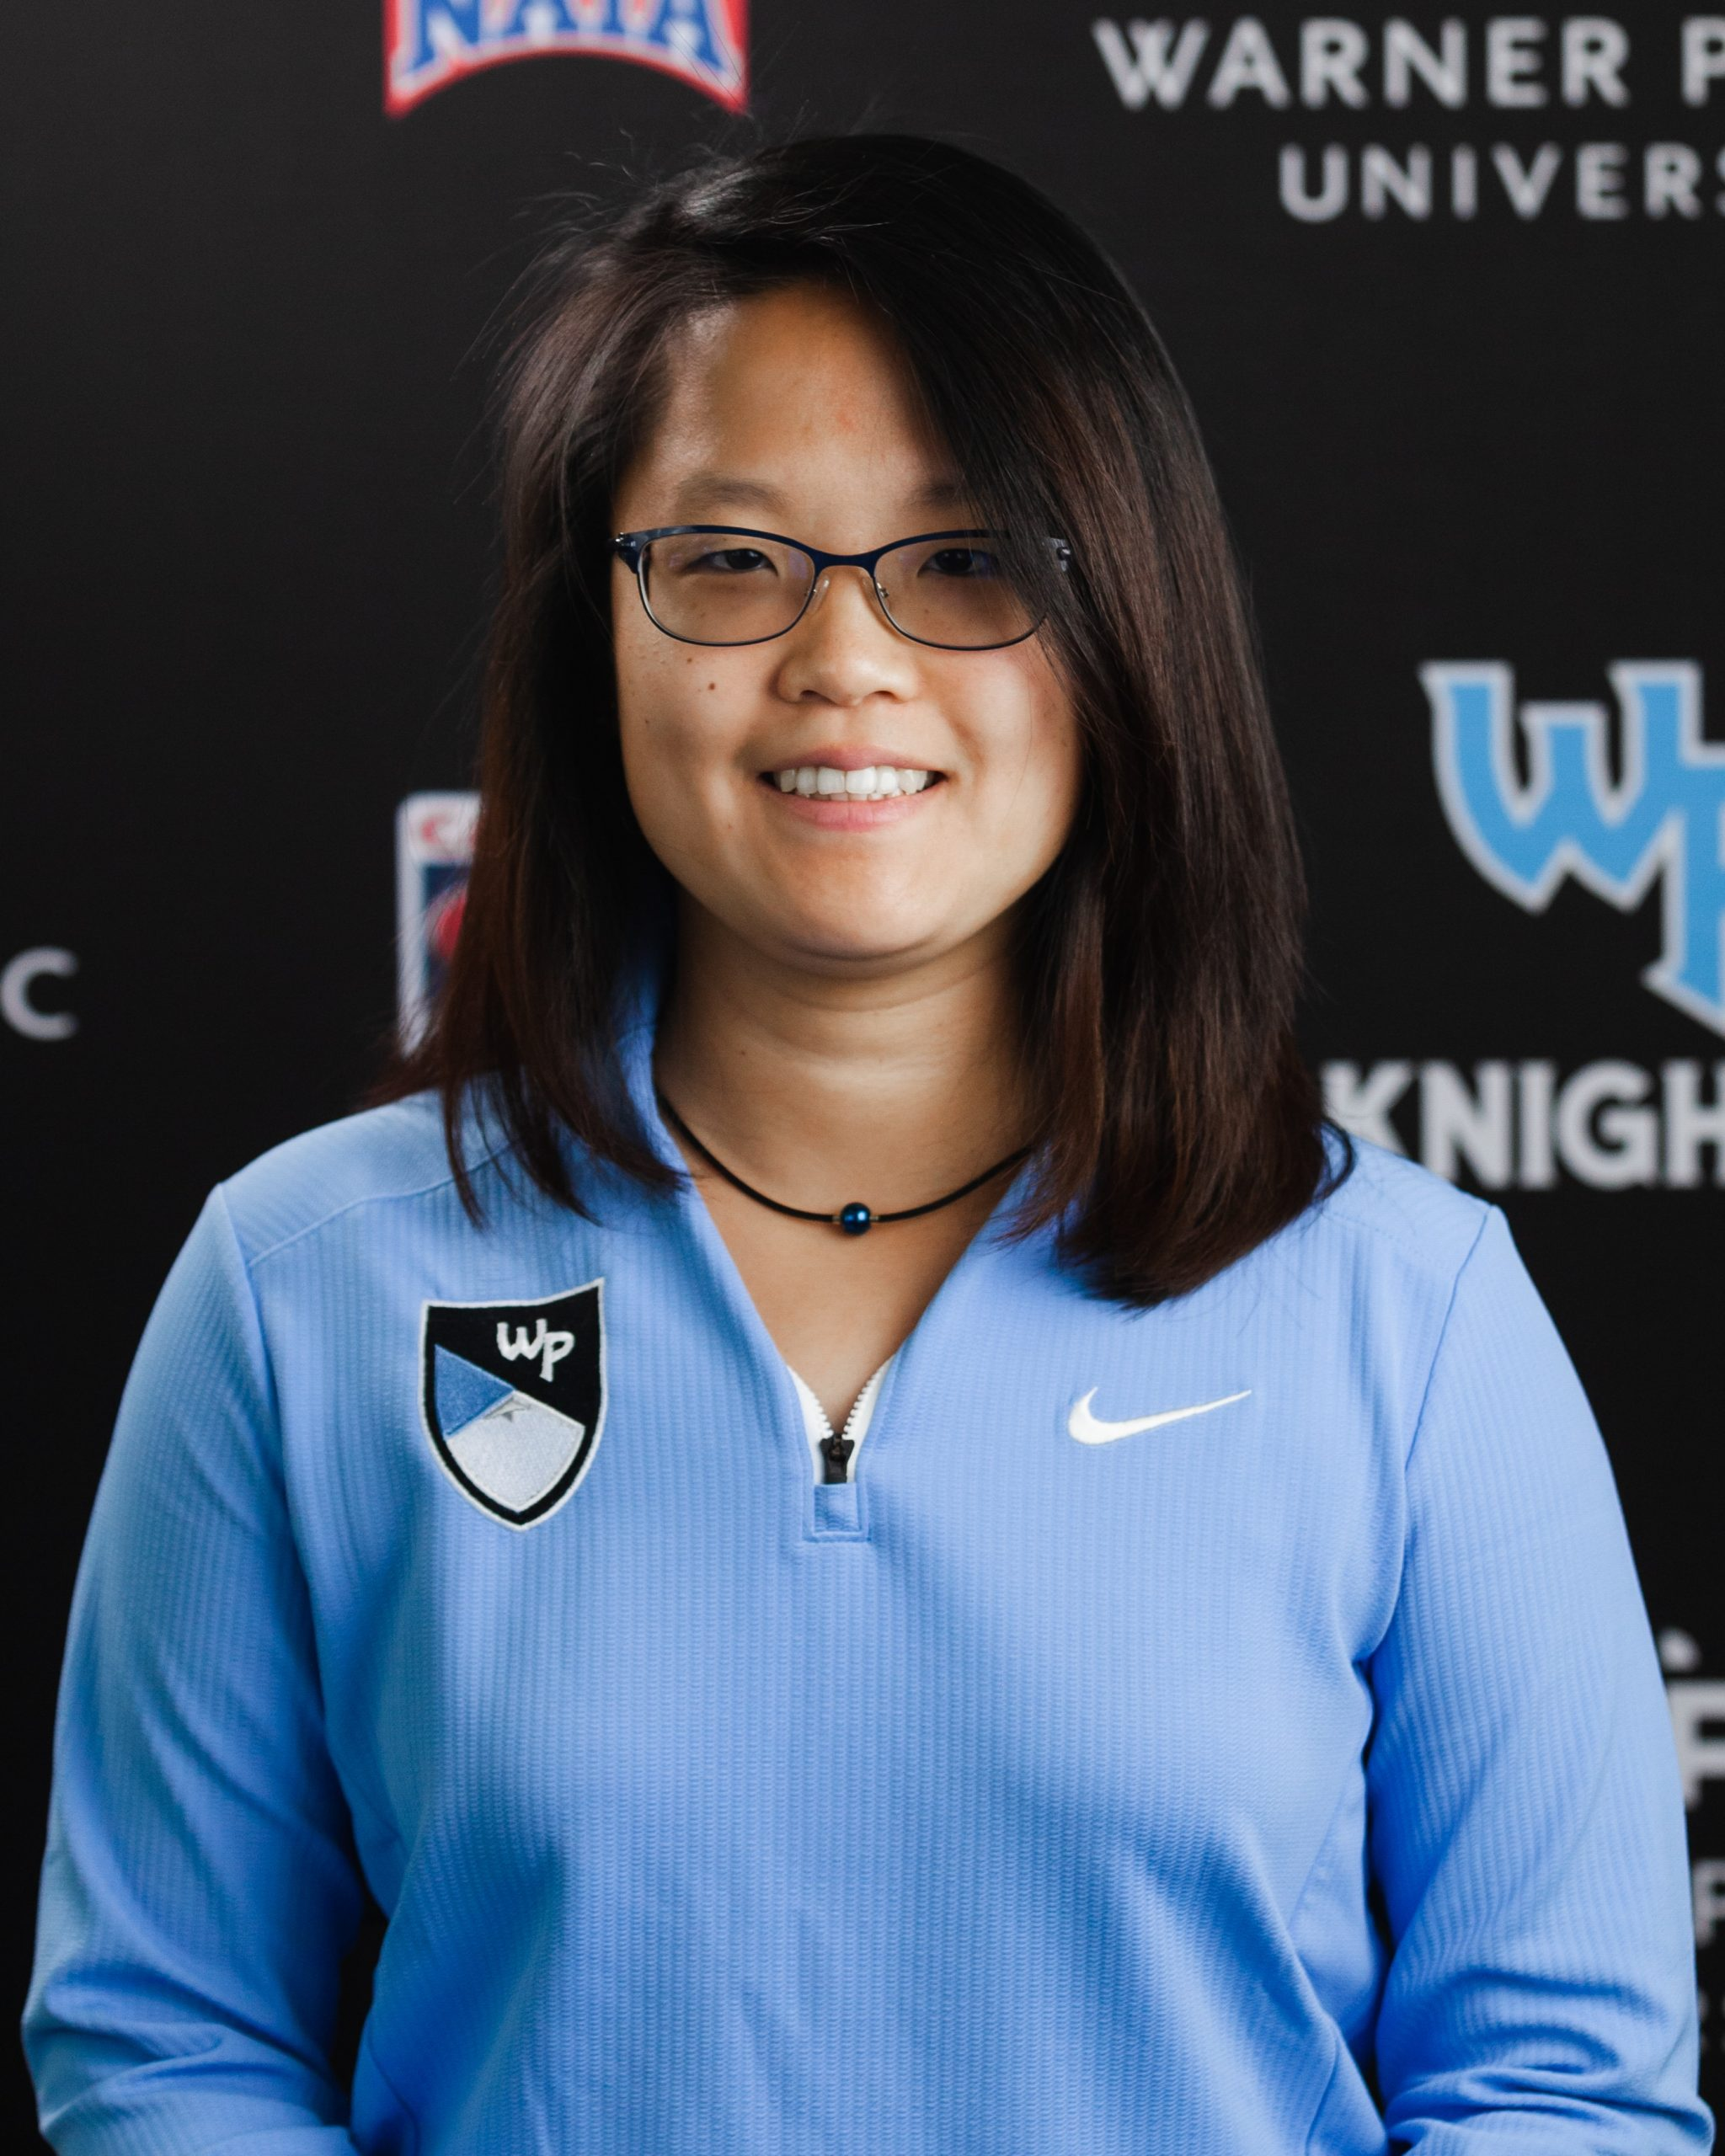 Image of Connie Wang